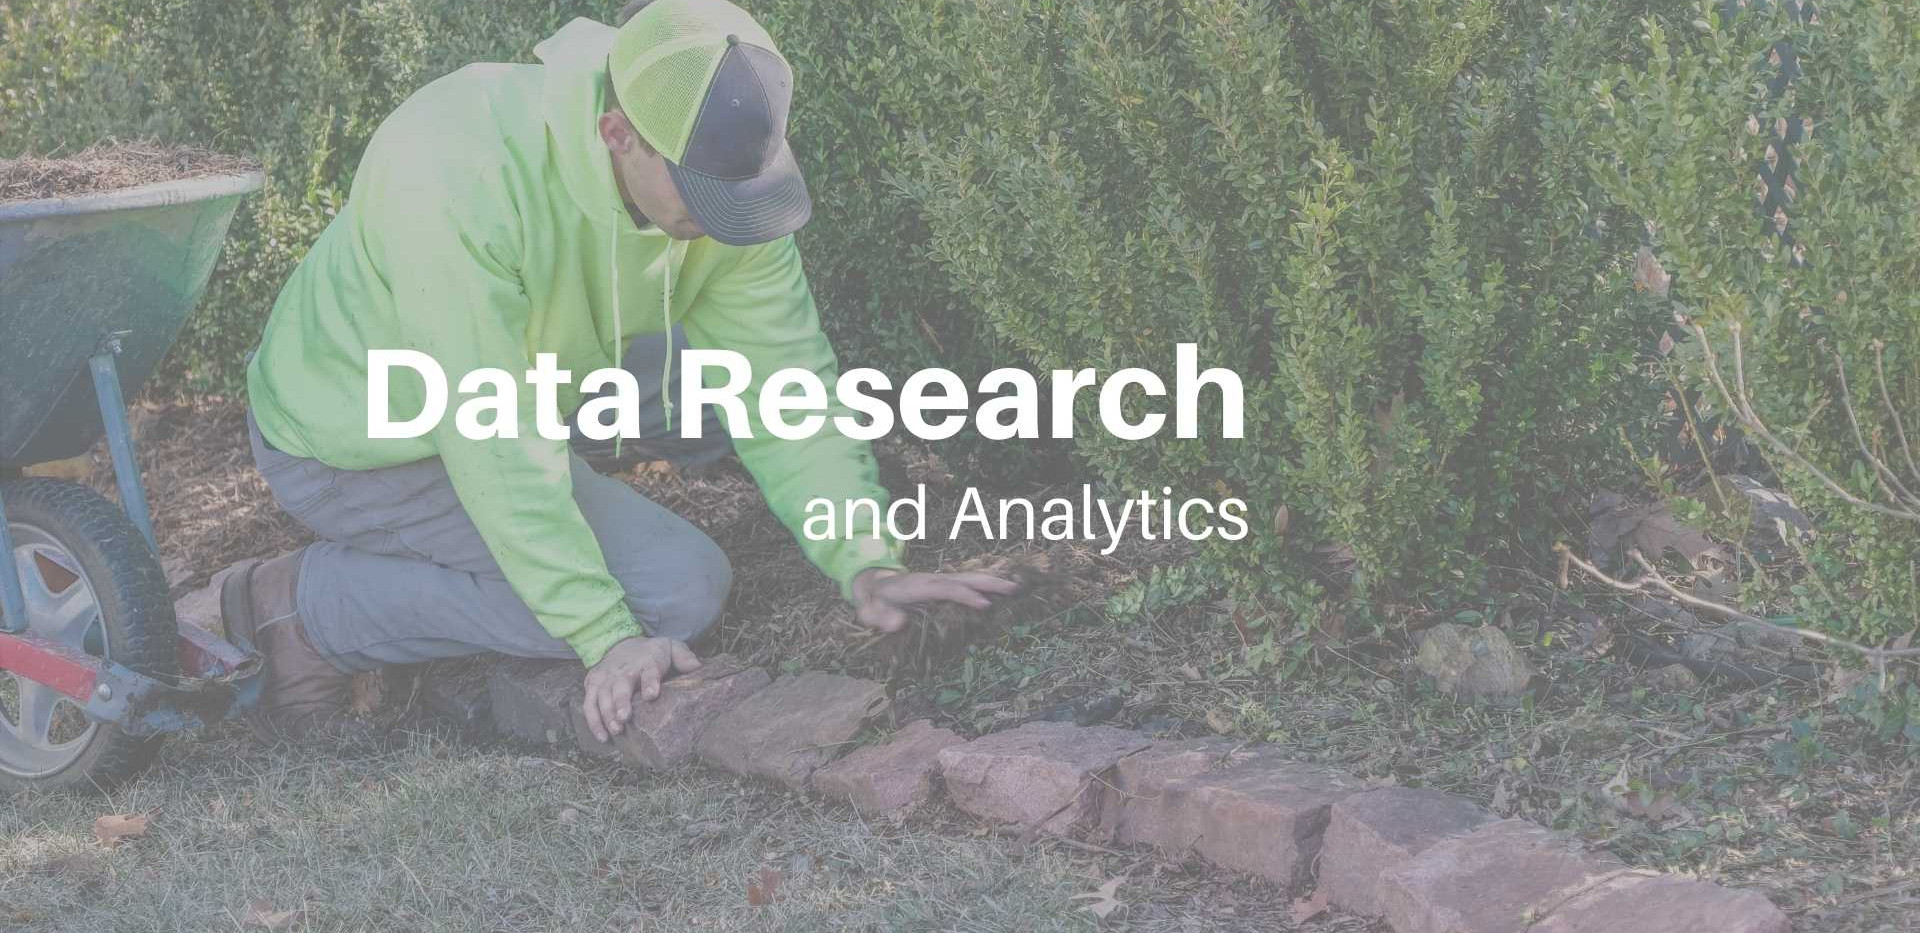 Data Research and Analytics